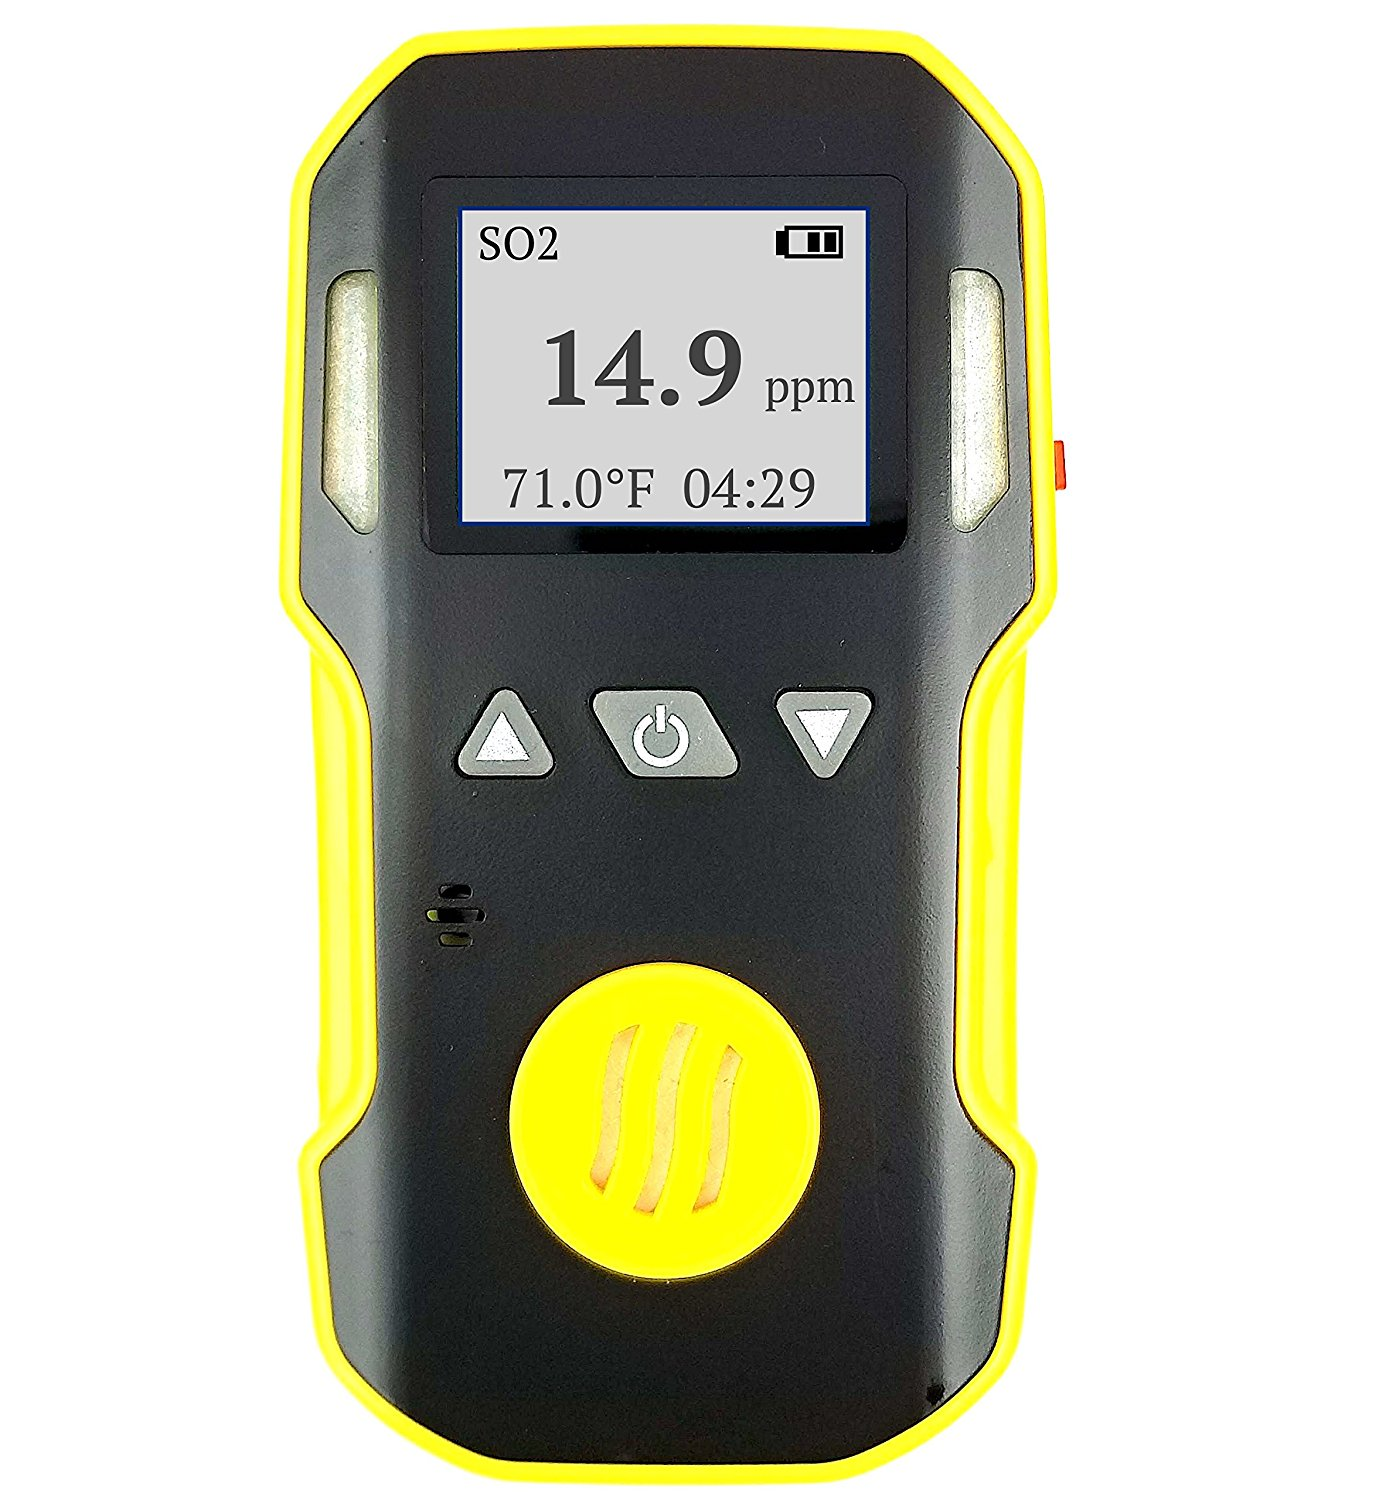 Sulfur Dioxide SO2 Detector by FORENSICS & BOSEAN   ABS & Anti-slip Grip Rubber   Water, Dust & Explosion Proof   Li-ion Battery 1500mAh   Adjustable Sound, Light & Vibration Alarms   0-20ppm SO2  